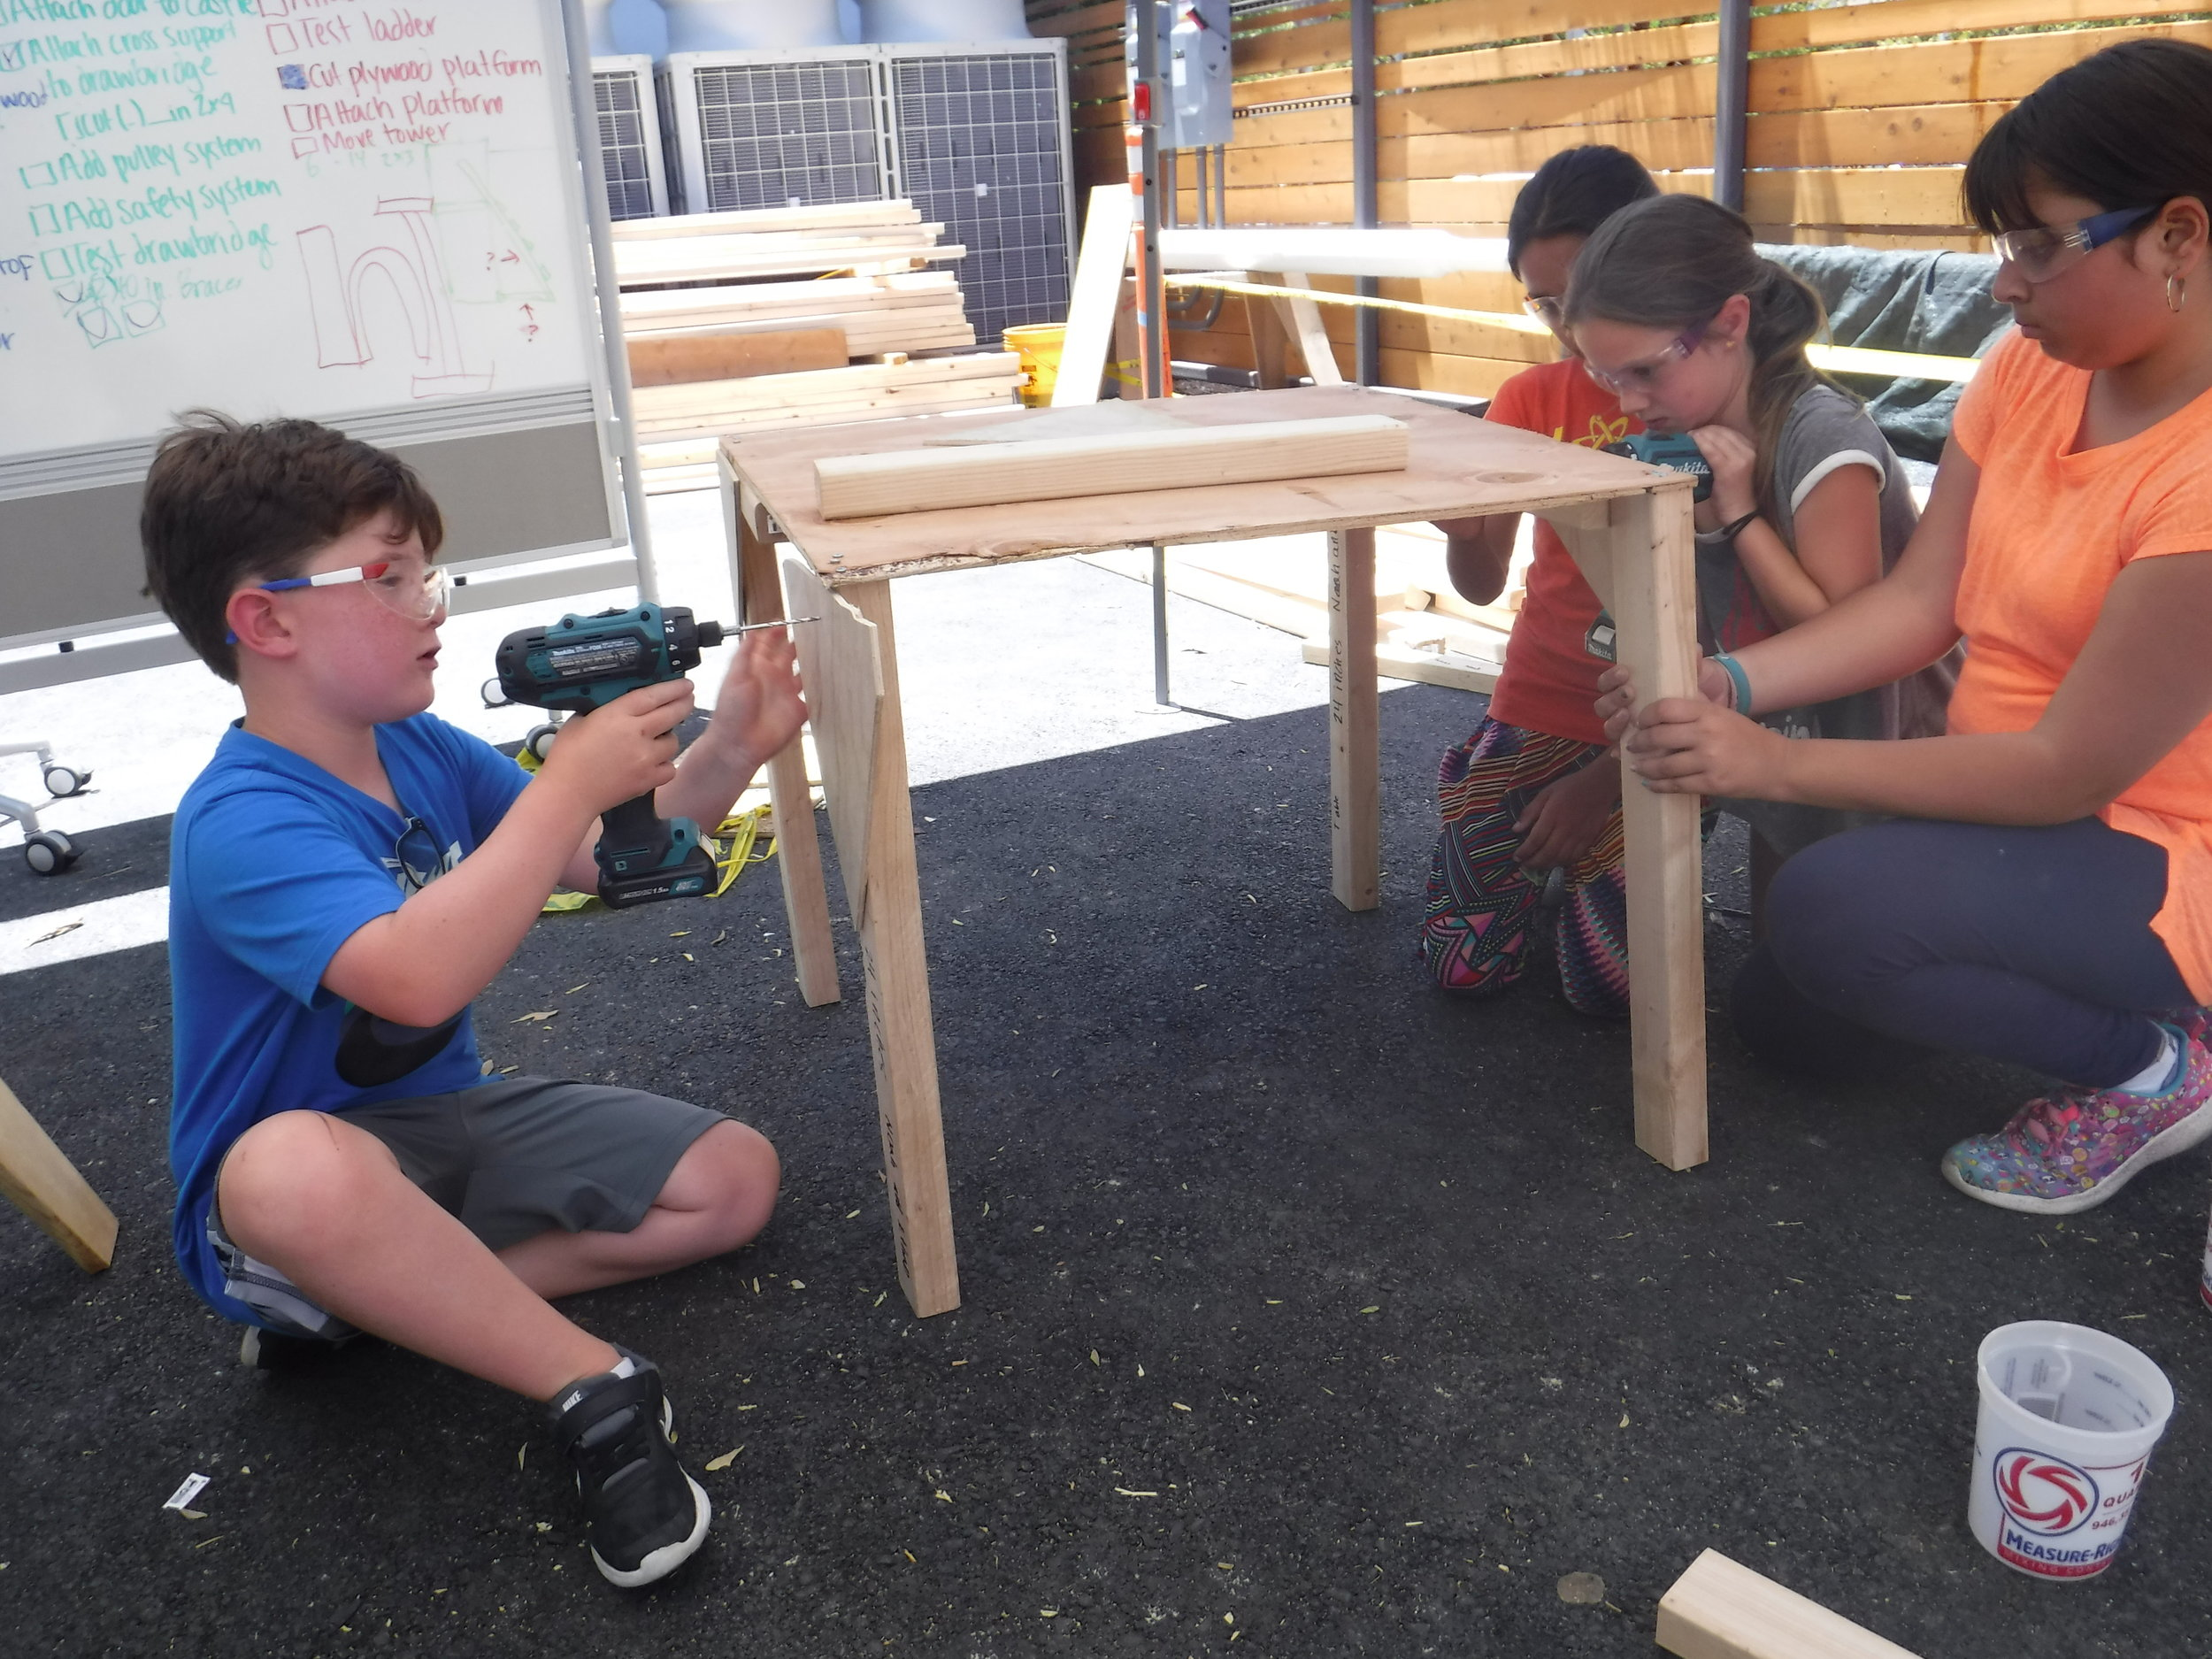 """Our bench was so sturdy and comfortable that I wanted to take it home for my garden but our table was a bit too wobbly. So a collaborator introduced the idea of """"gussets,"""" triangular pieces of plywood that help reinforce two pieces of wood. The team got busy attaching gussets to the table legs and the problem was solved."""